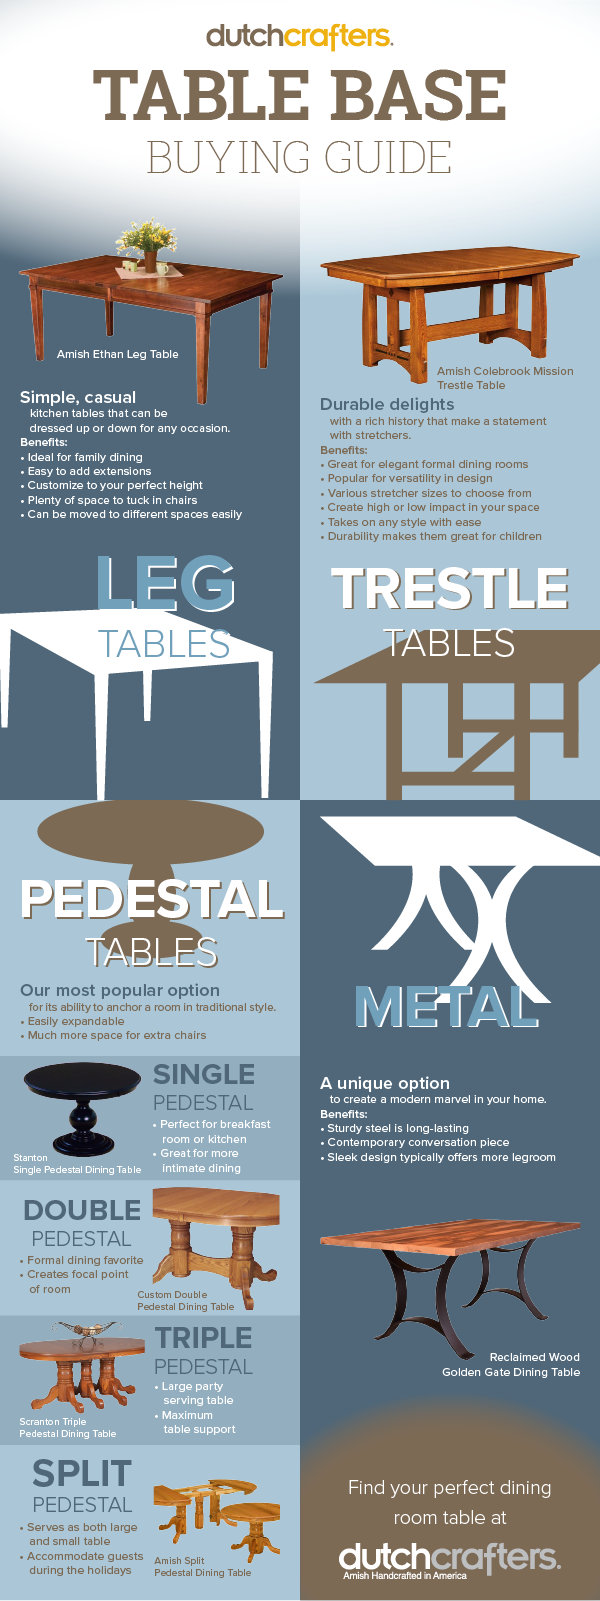 DutchCrafters Table Base Buying Guide